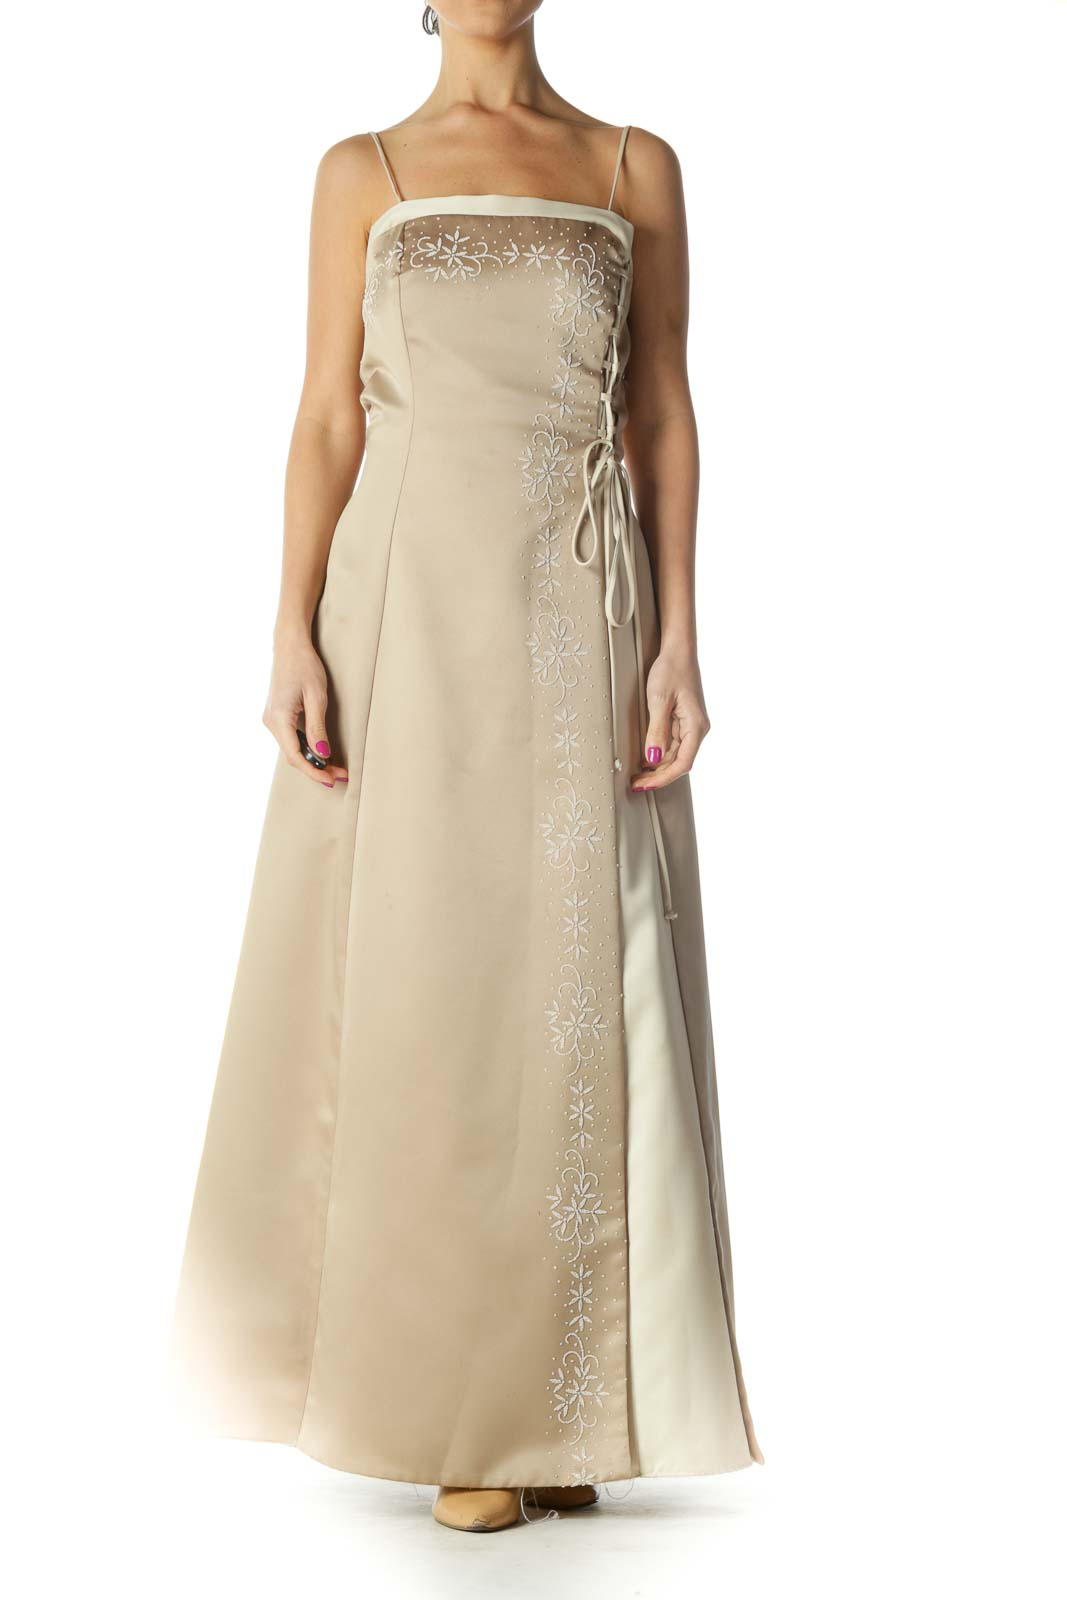 Beige Solid Chic Column Dress Front